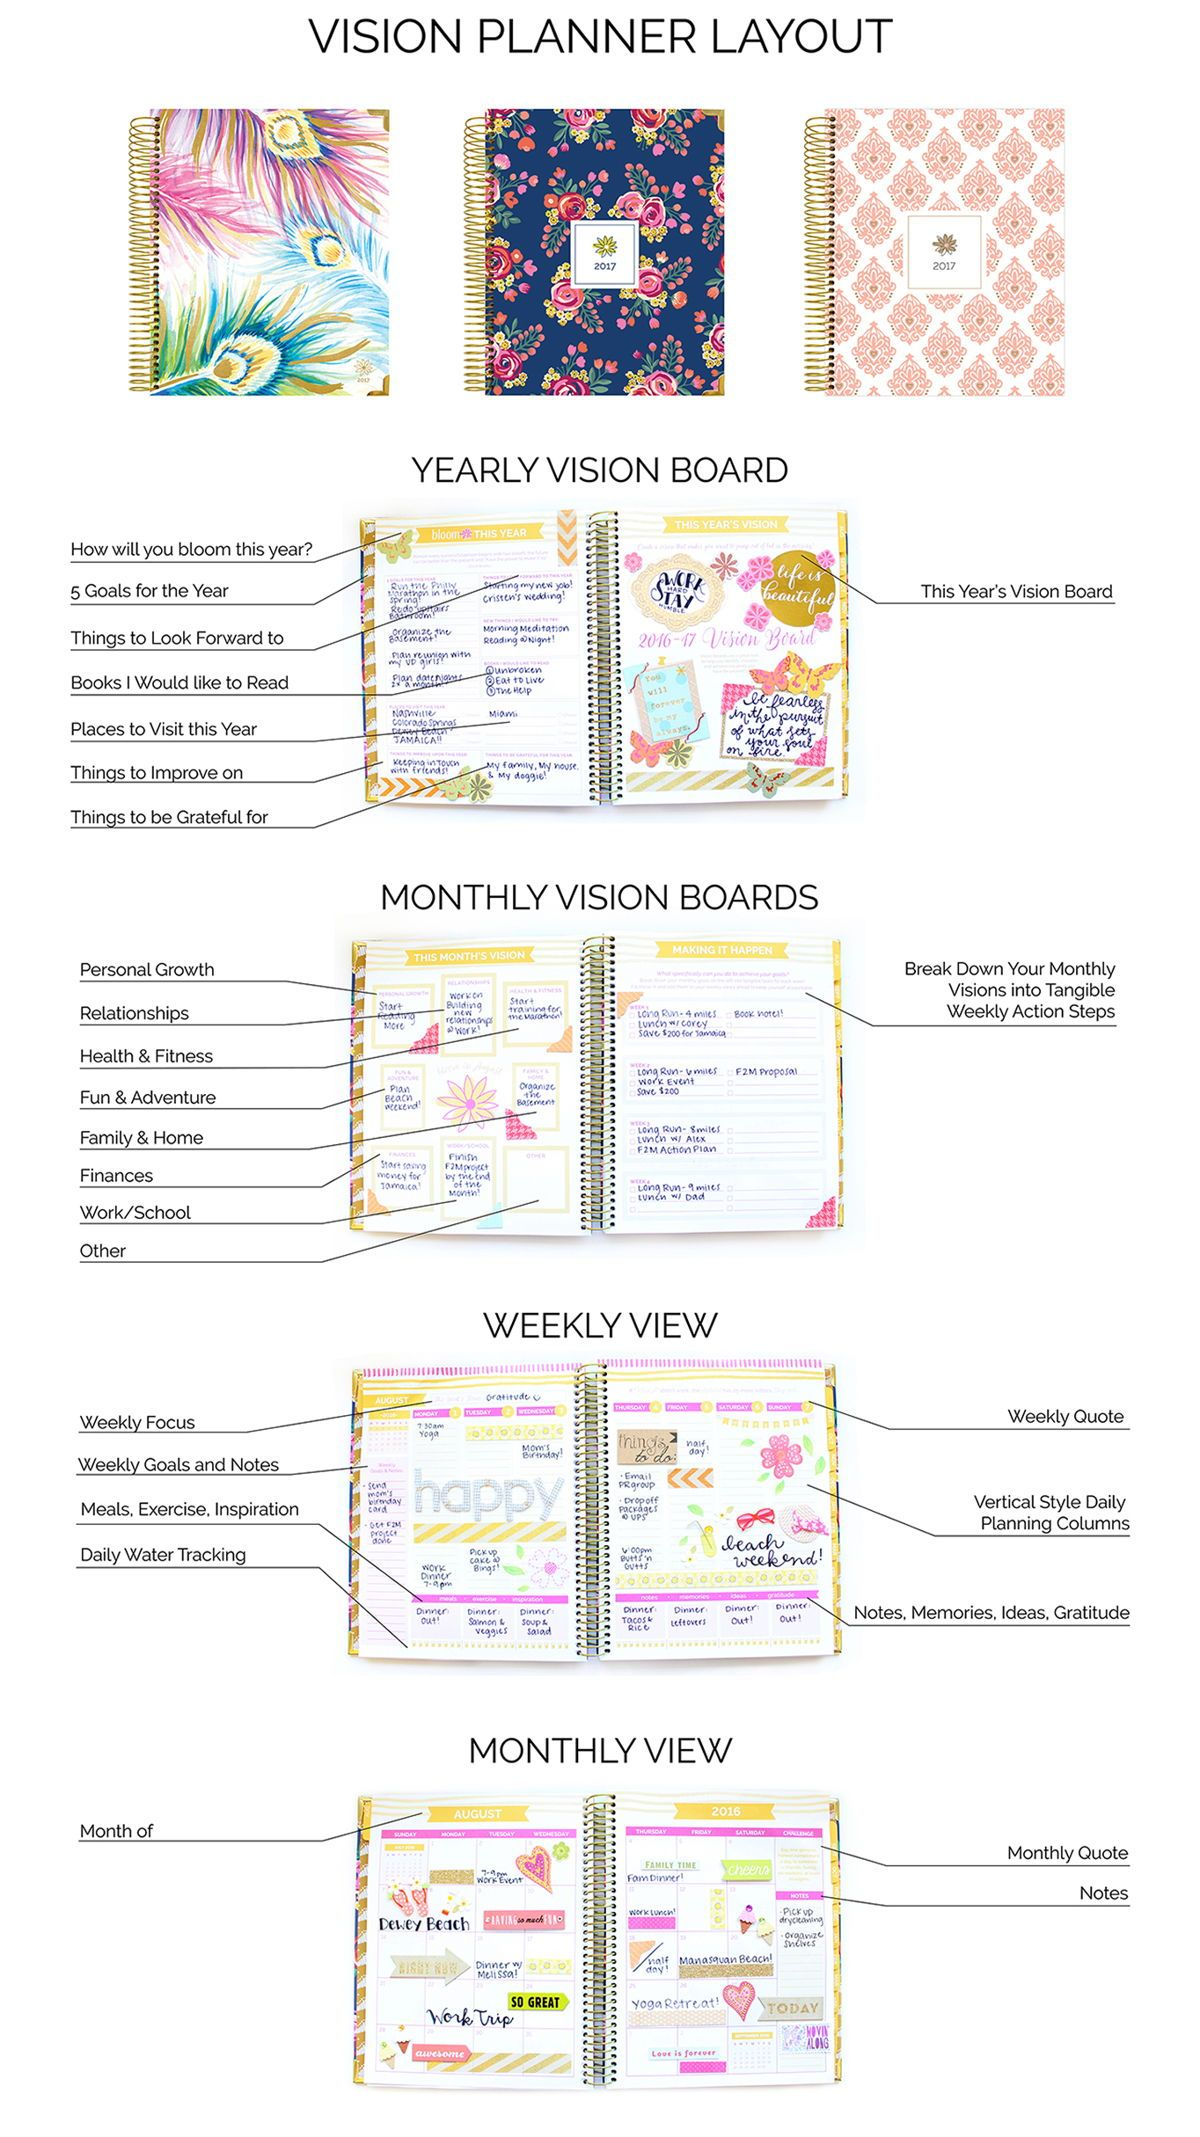 fashion planner vision planner monthly planner teacher planner